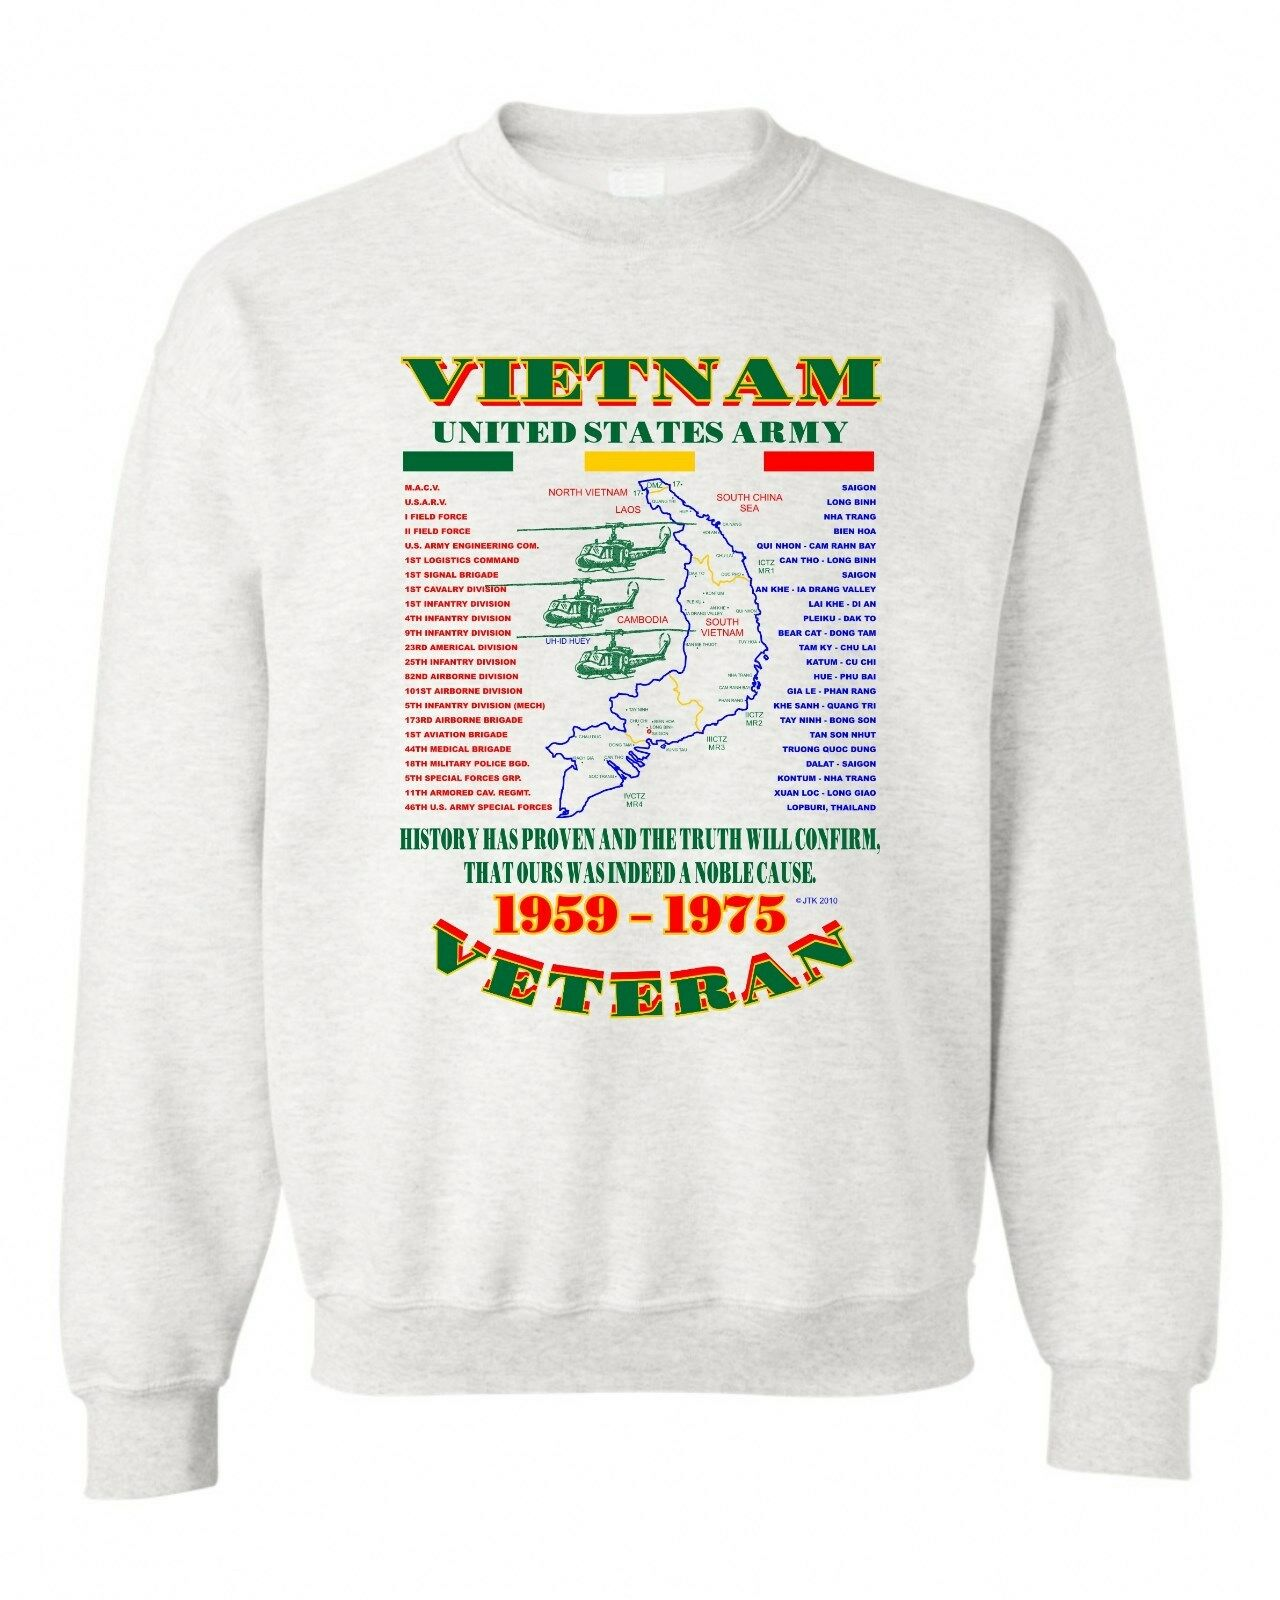 VIETNAM WAR. U.S. ARMY VETERAN UNIT & OPERATION MILITARY SWEATSHIRT